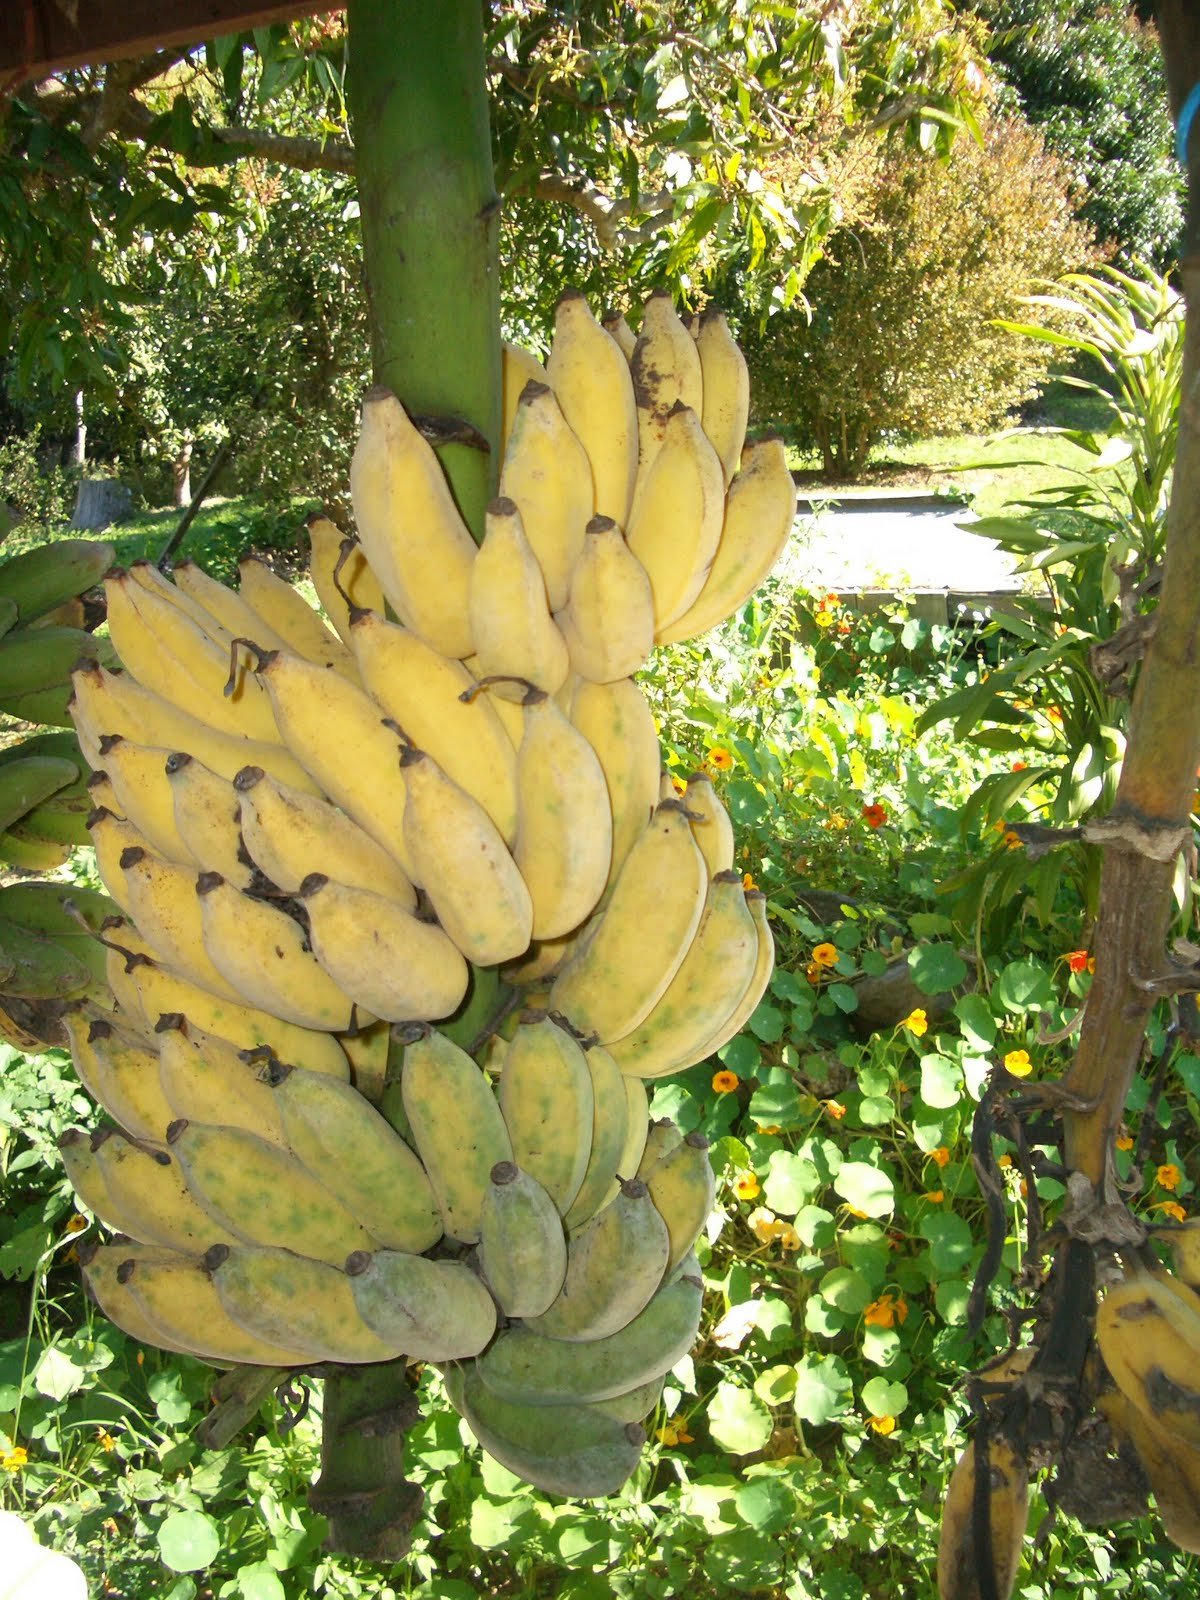 Improving our self sufficiency by growing bananas in abundance in our permaculture garden.